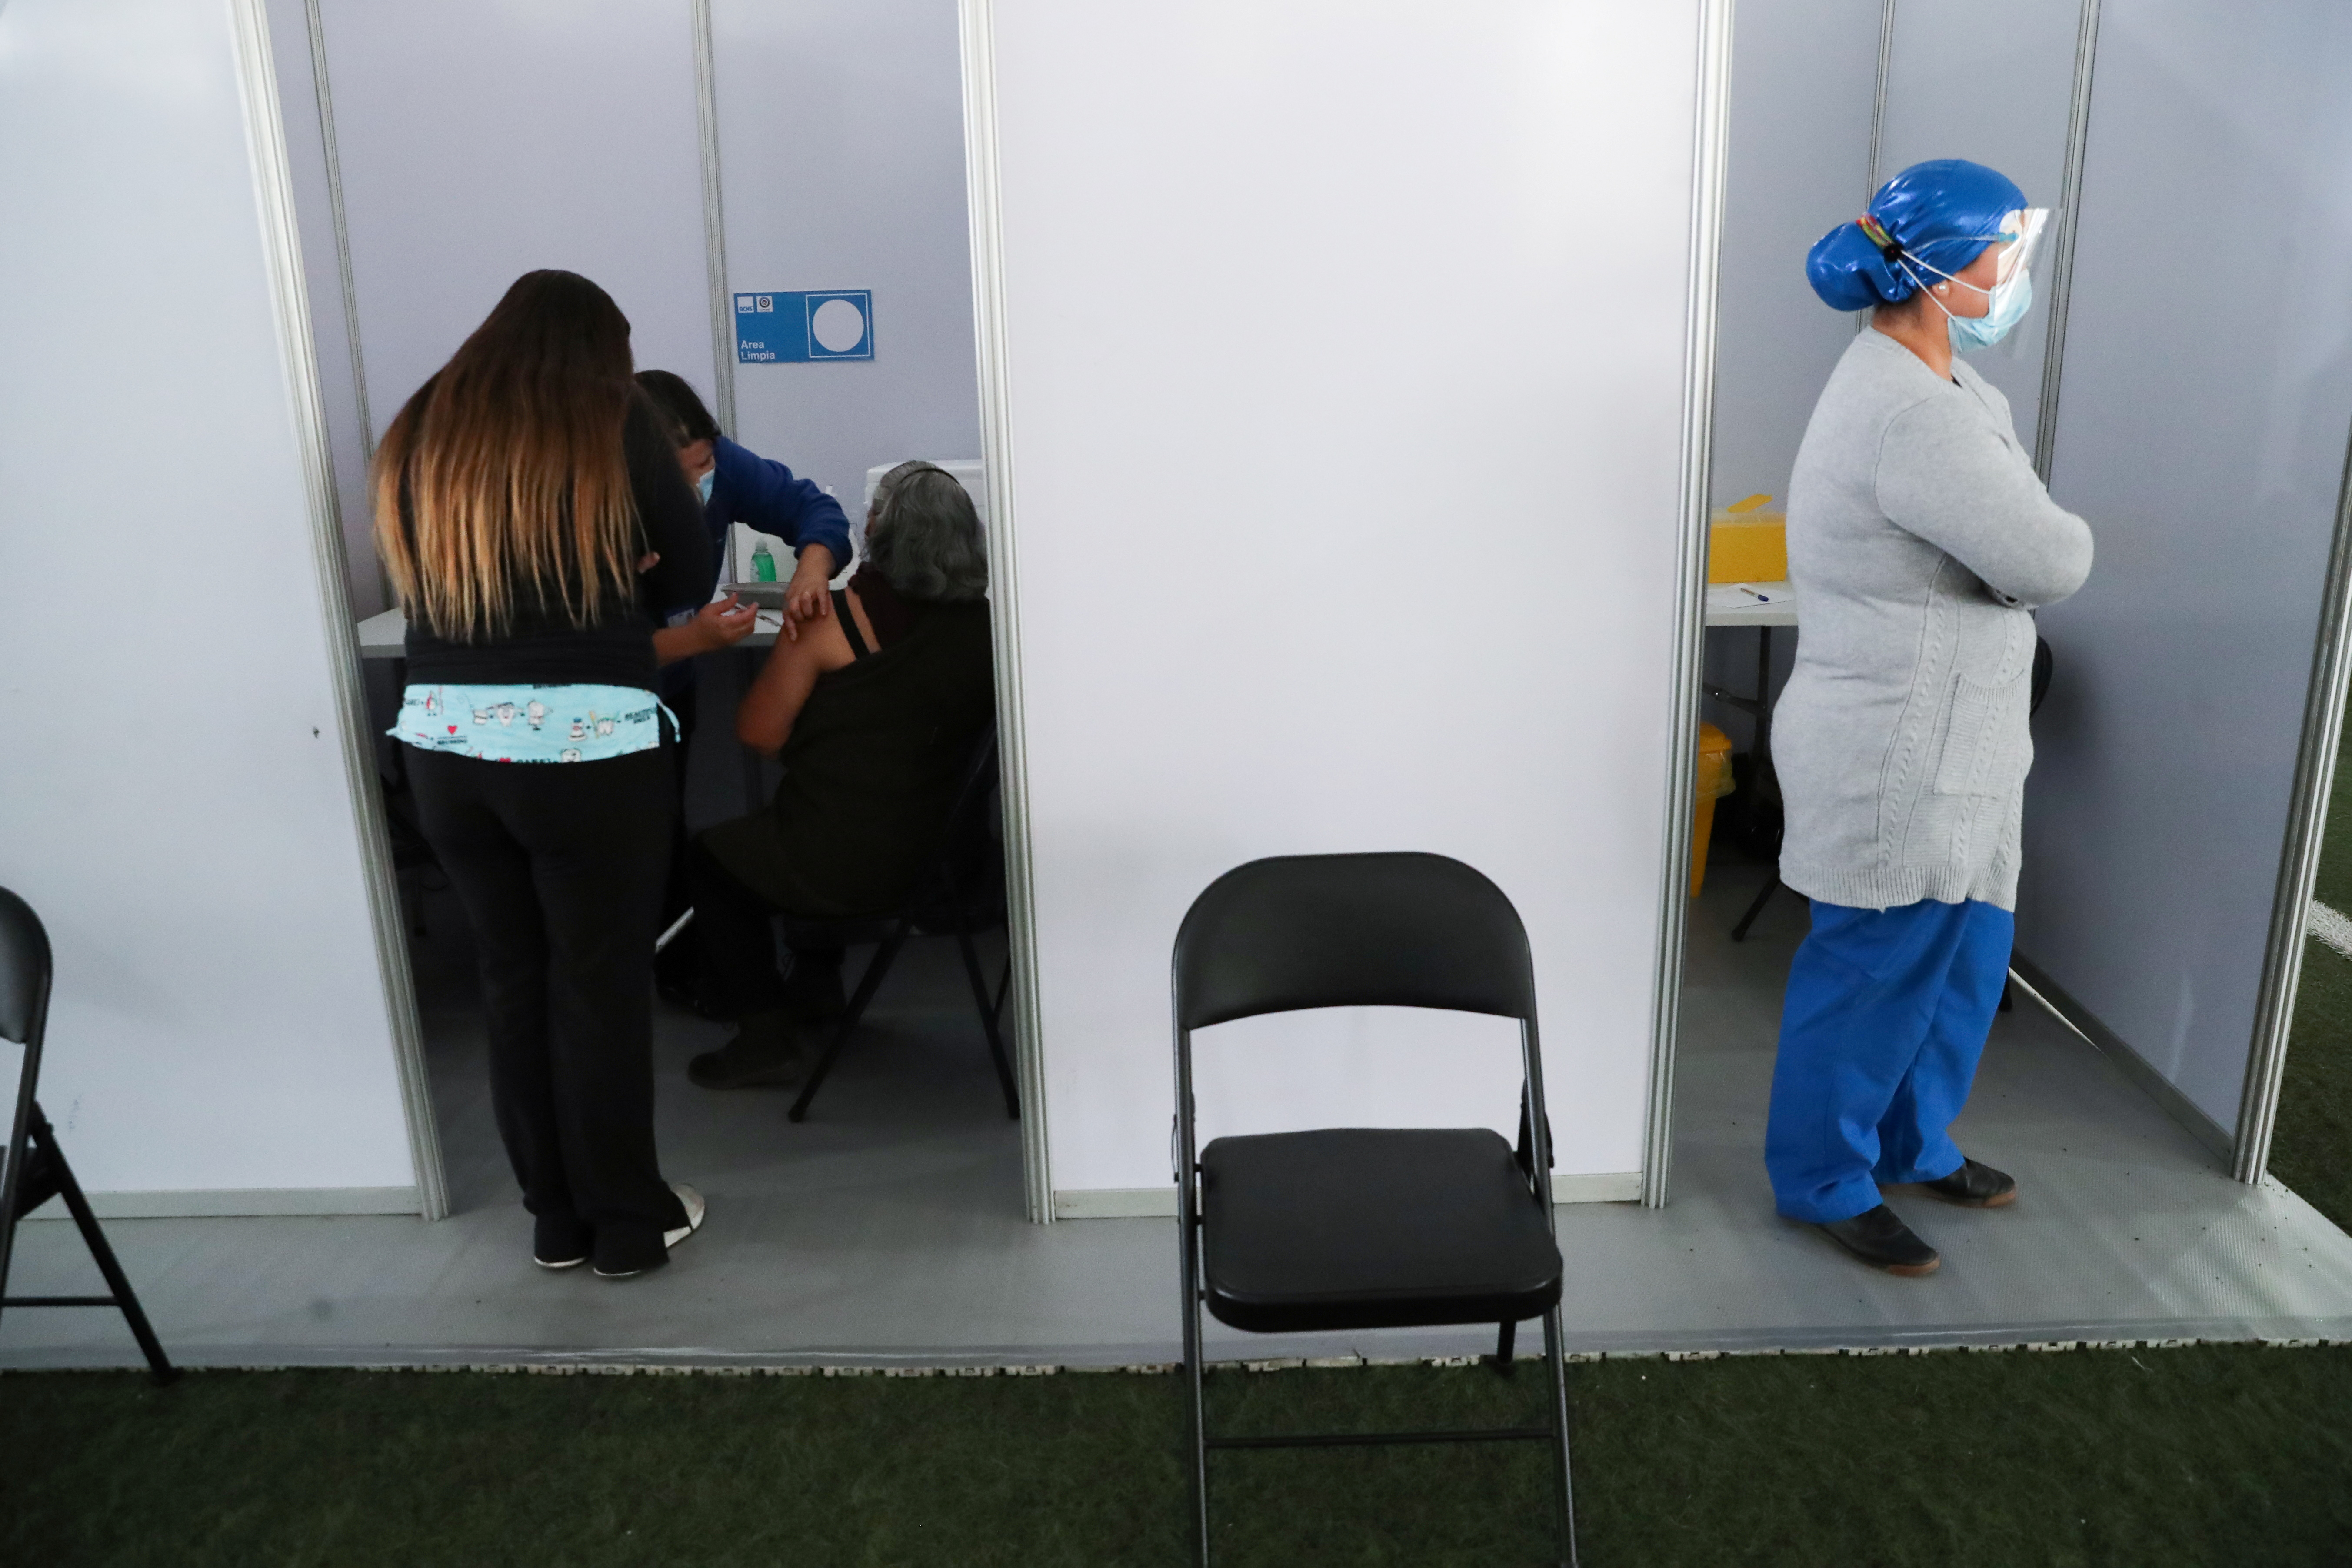 A woman receives a vaccine as part of the seasonal flu vaccination campaign during the coronavirus disease (COVID-19) pandemic, in Santiago, Chile April 5, 2021. REUTERS/Ivan Alvarado